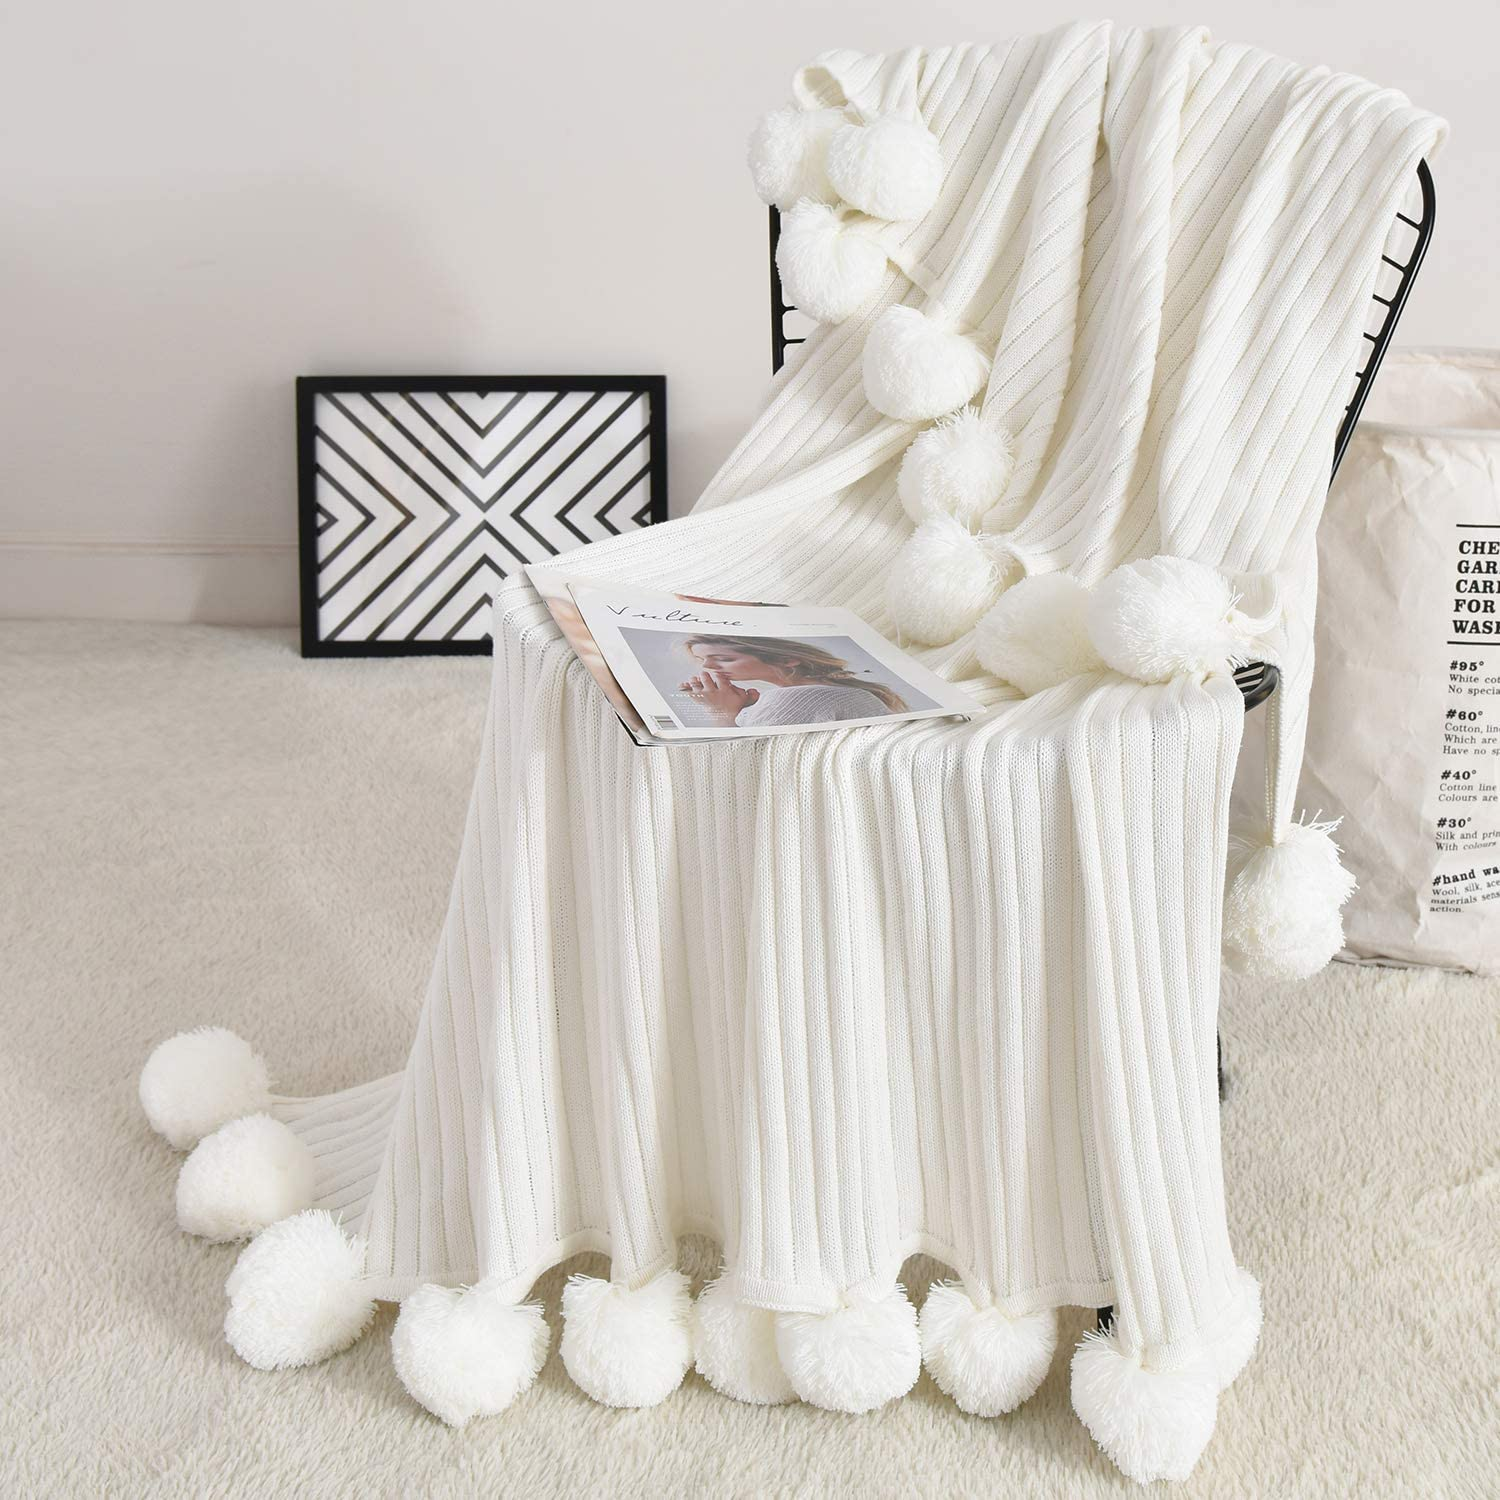 Foomoon Pom Pom Throw Blanket Knit Throw Blankets with Pompom Fringe, 39 x 59 Inch Gifts for Christmas Soft Plush Crochet Blanket, Decorative Cotton Pom Blanket for Couch Sofa (White)…